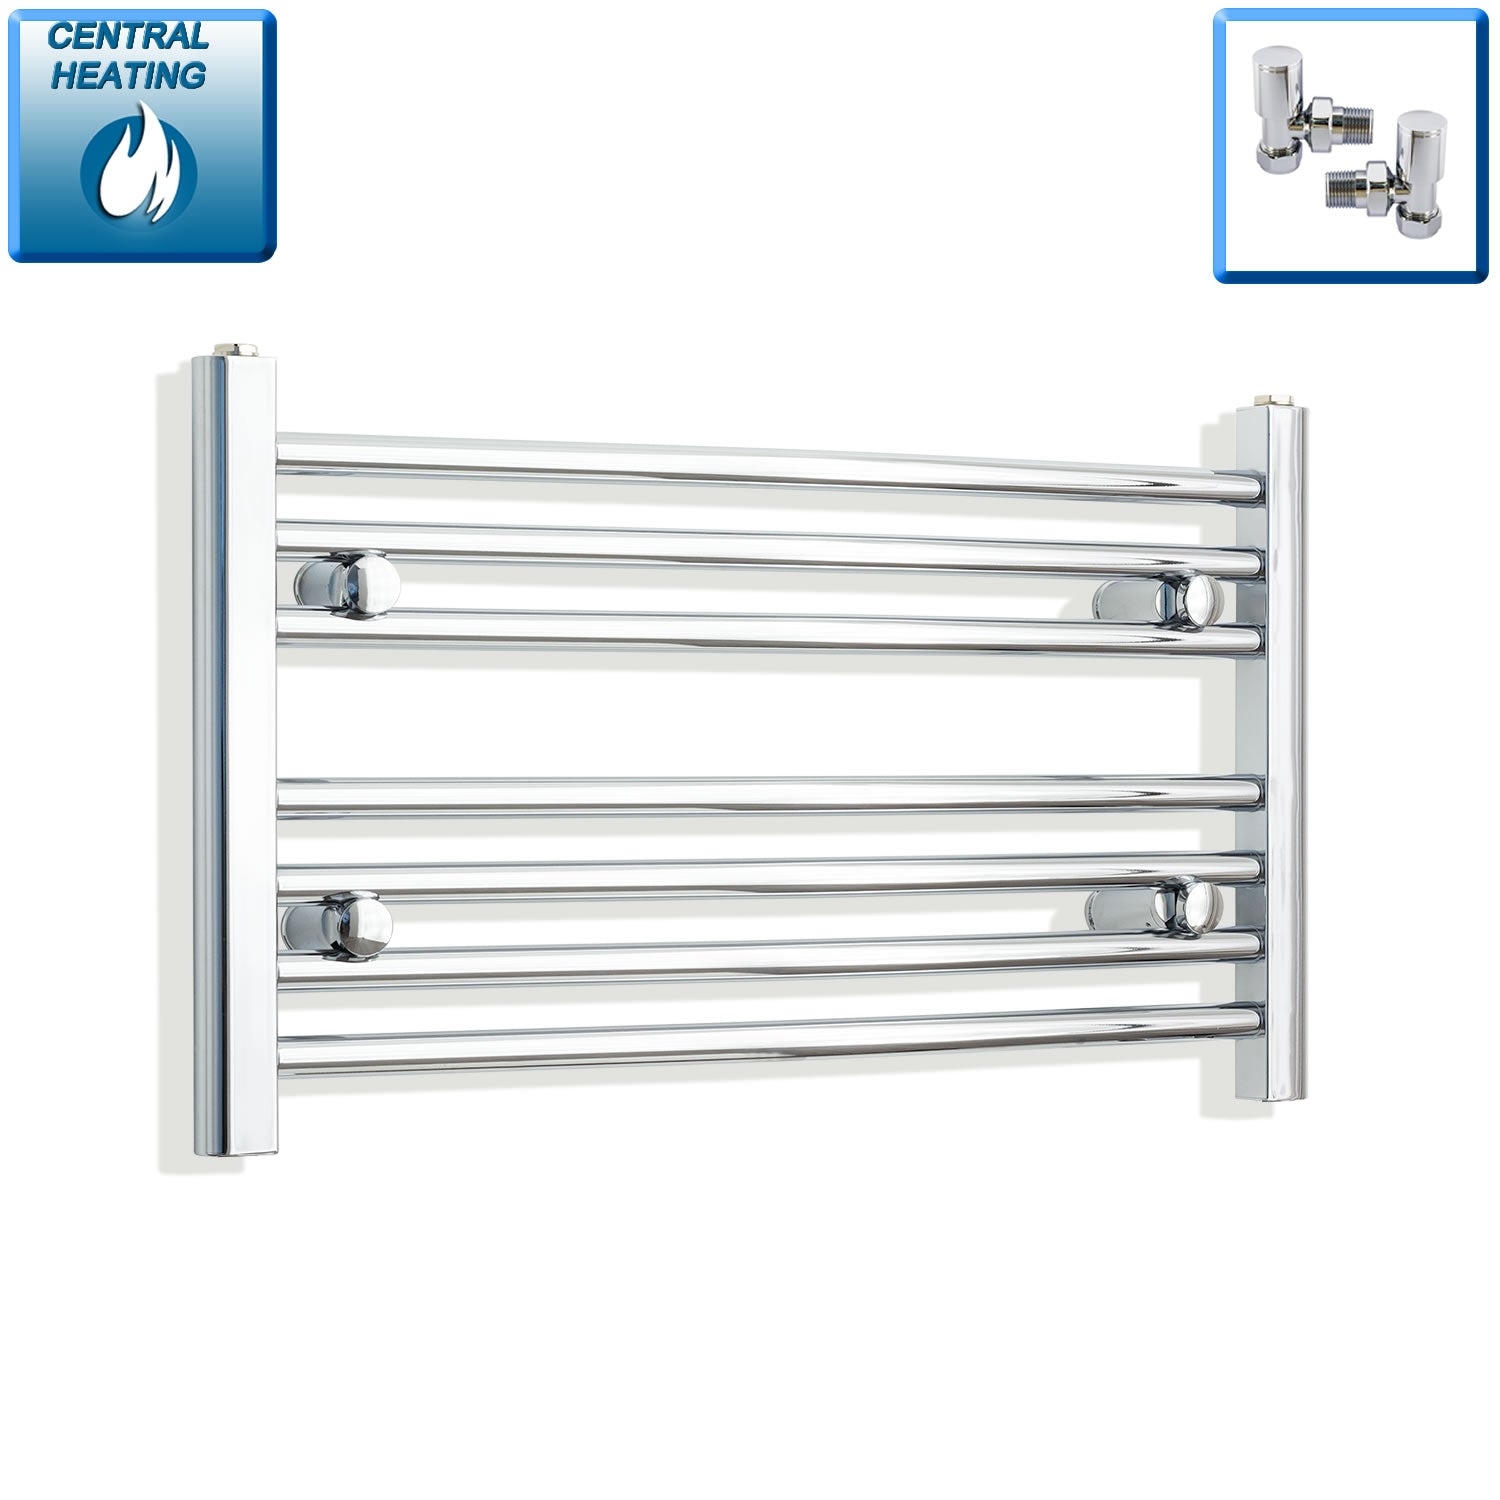 700mm Wide 400mm High Chrome Towel Rail Radiator With Angled Valve